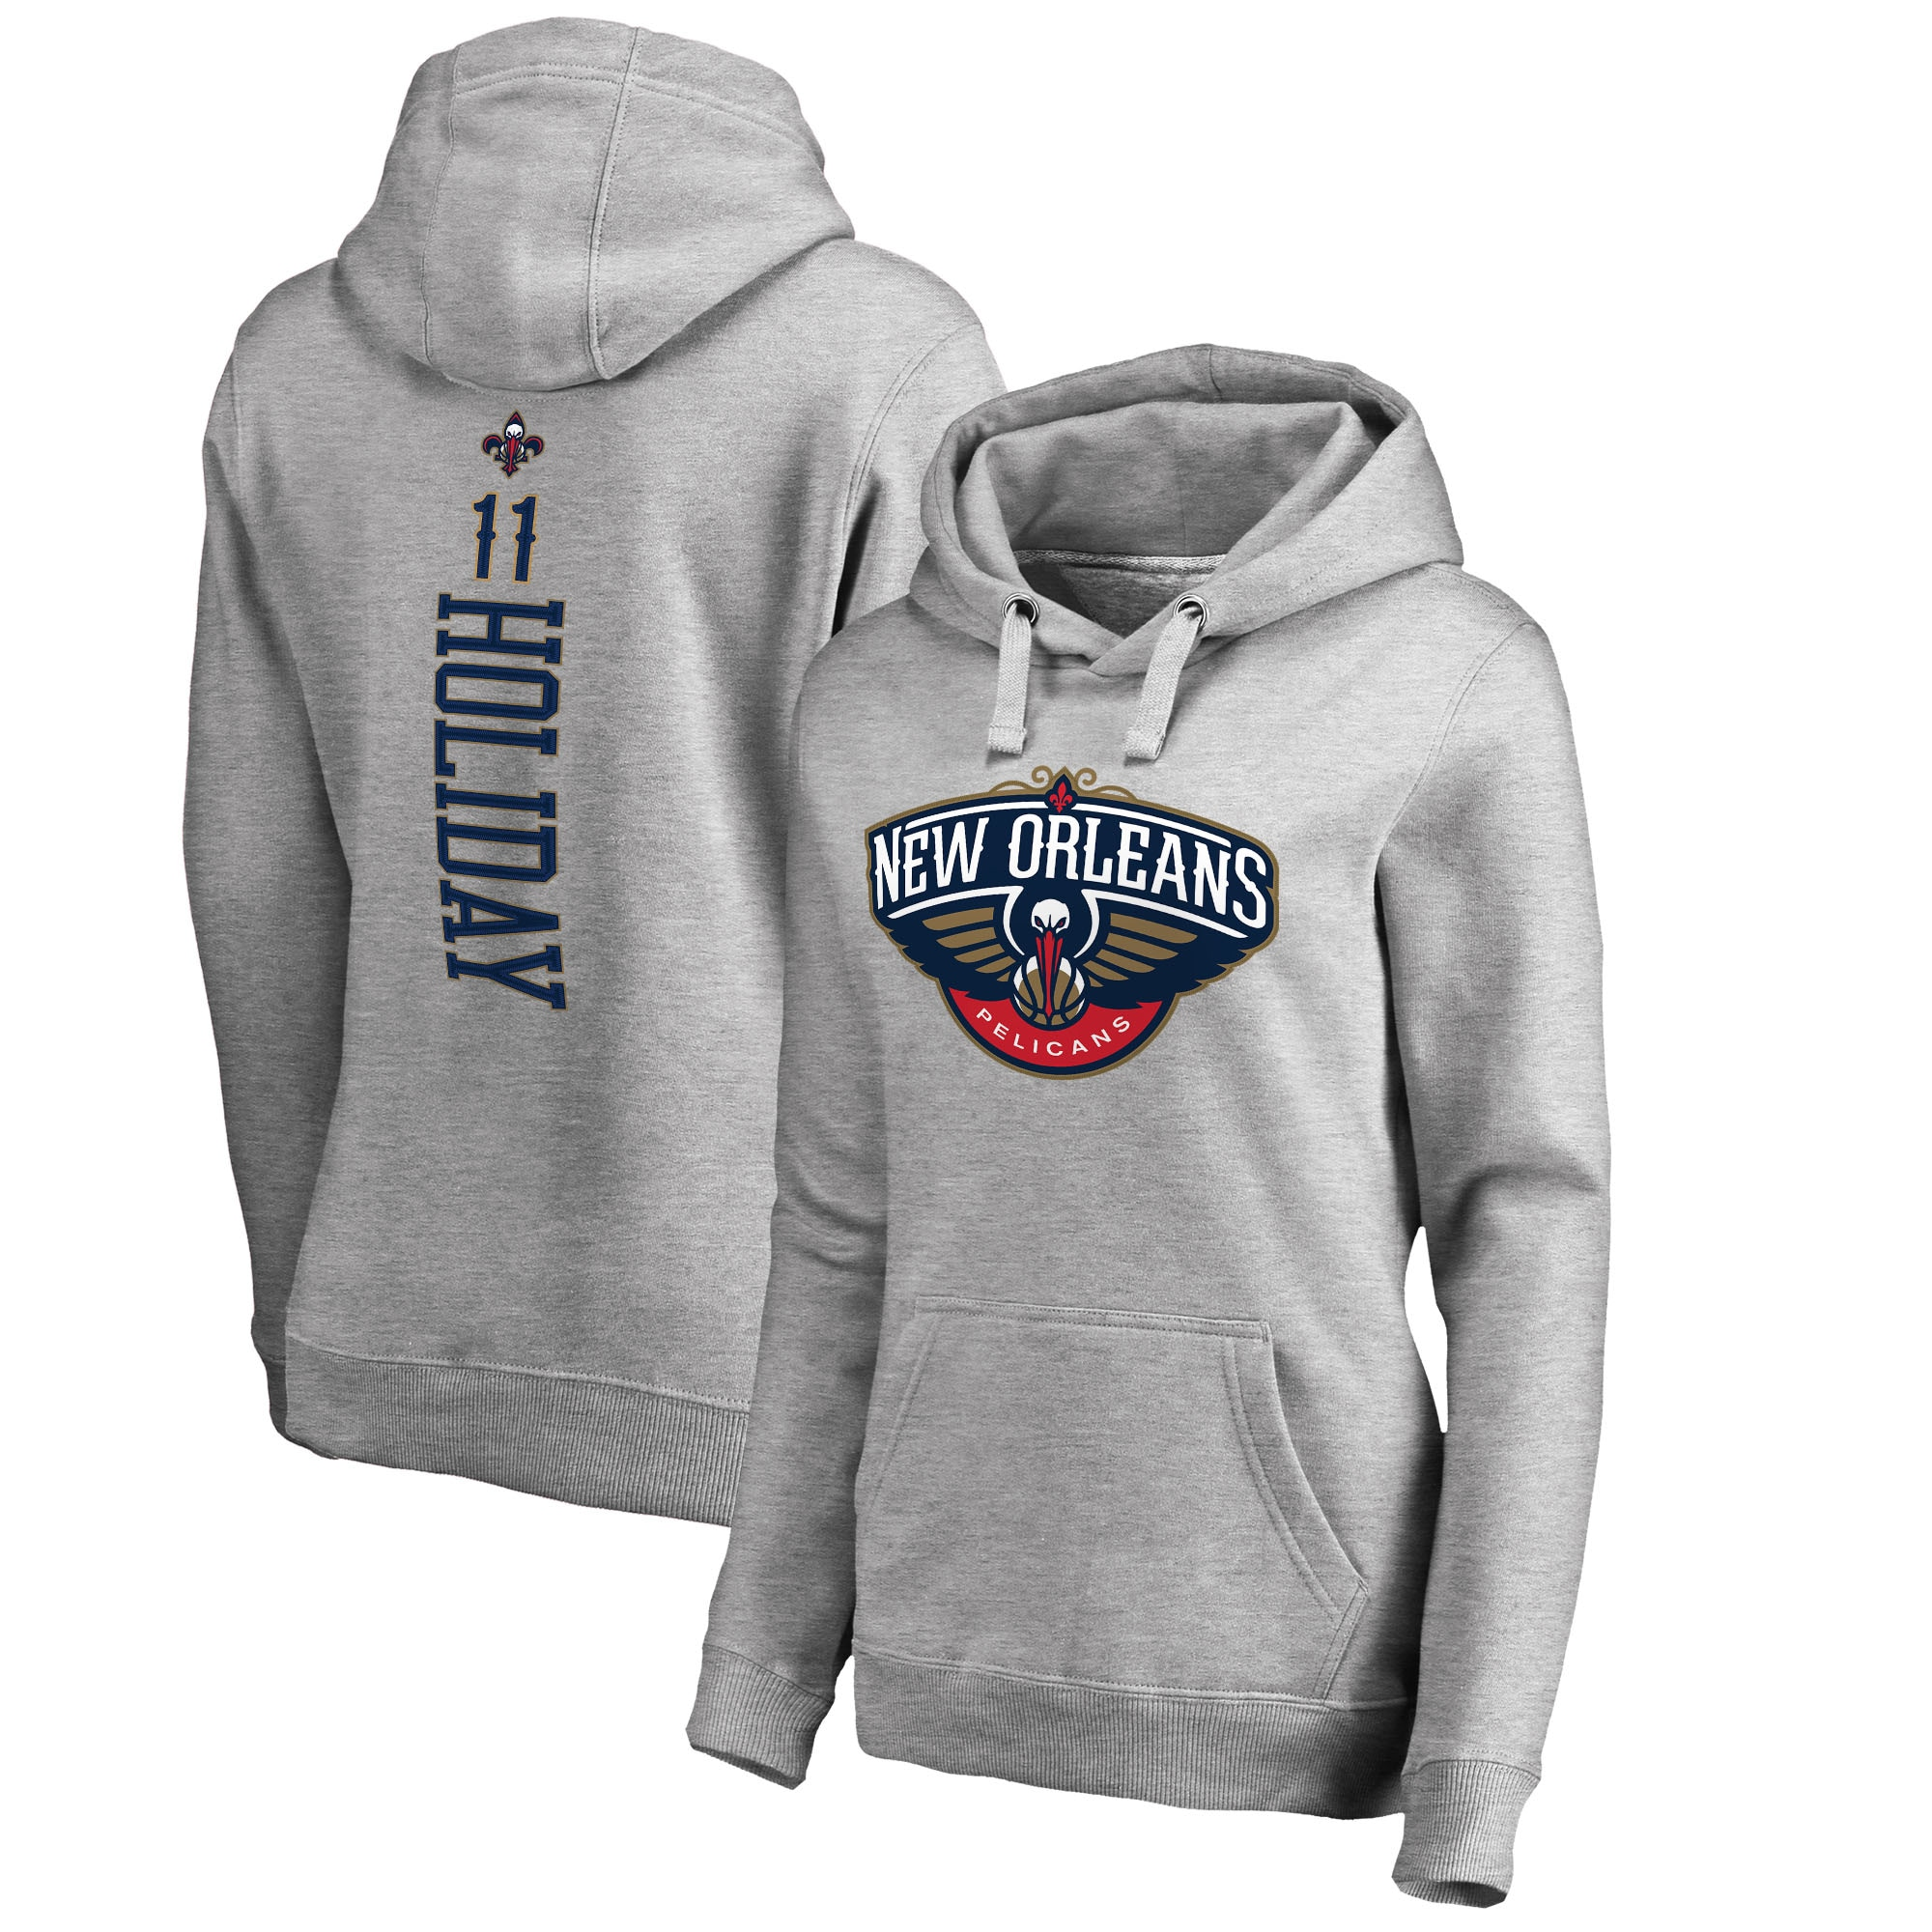 Jrue Holiday New Orleans Pelicans Fanatics Branded Women's Backer Name and Number Pullover Hoodie - Heathered Gray